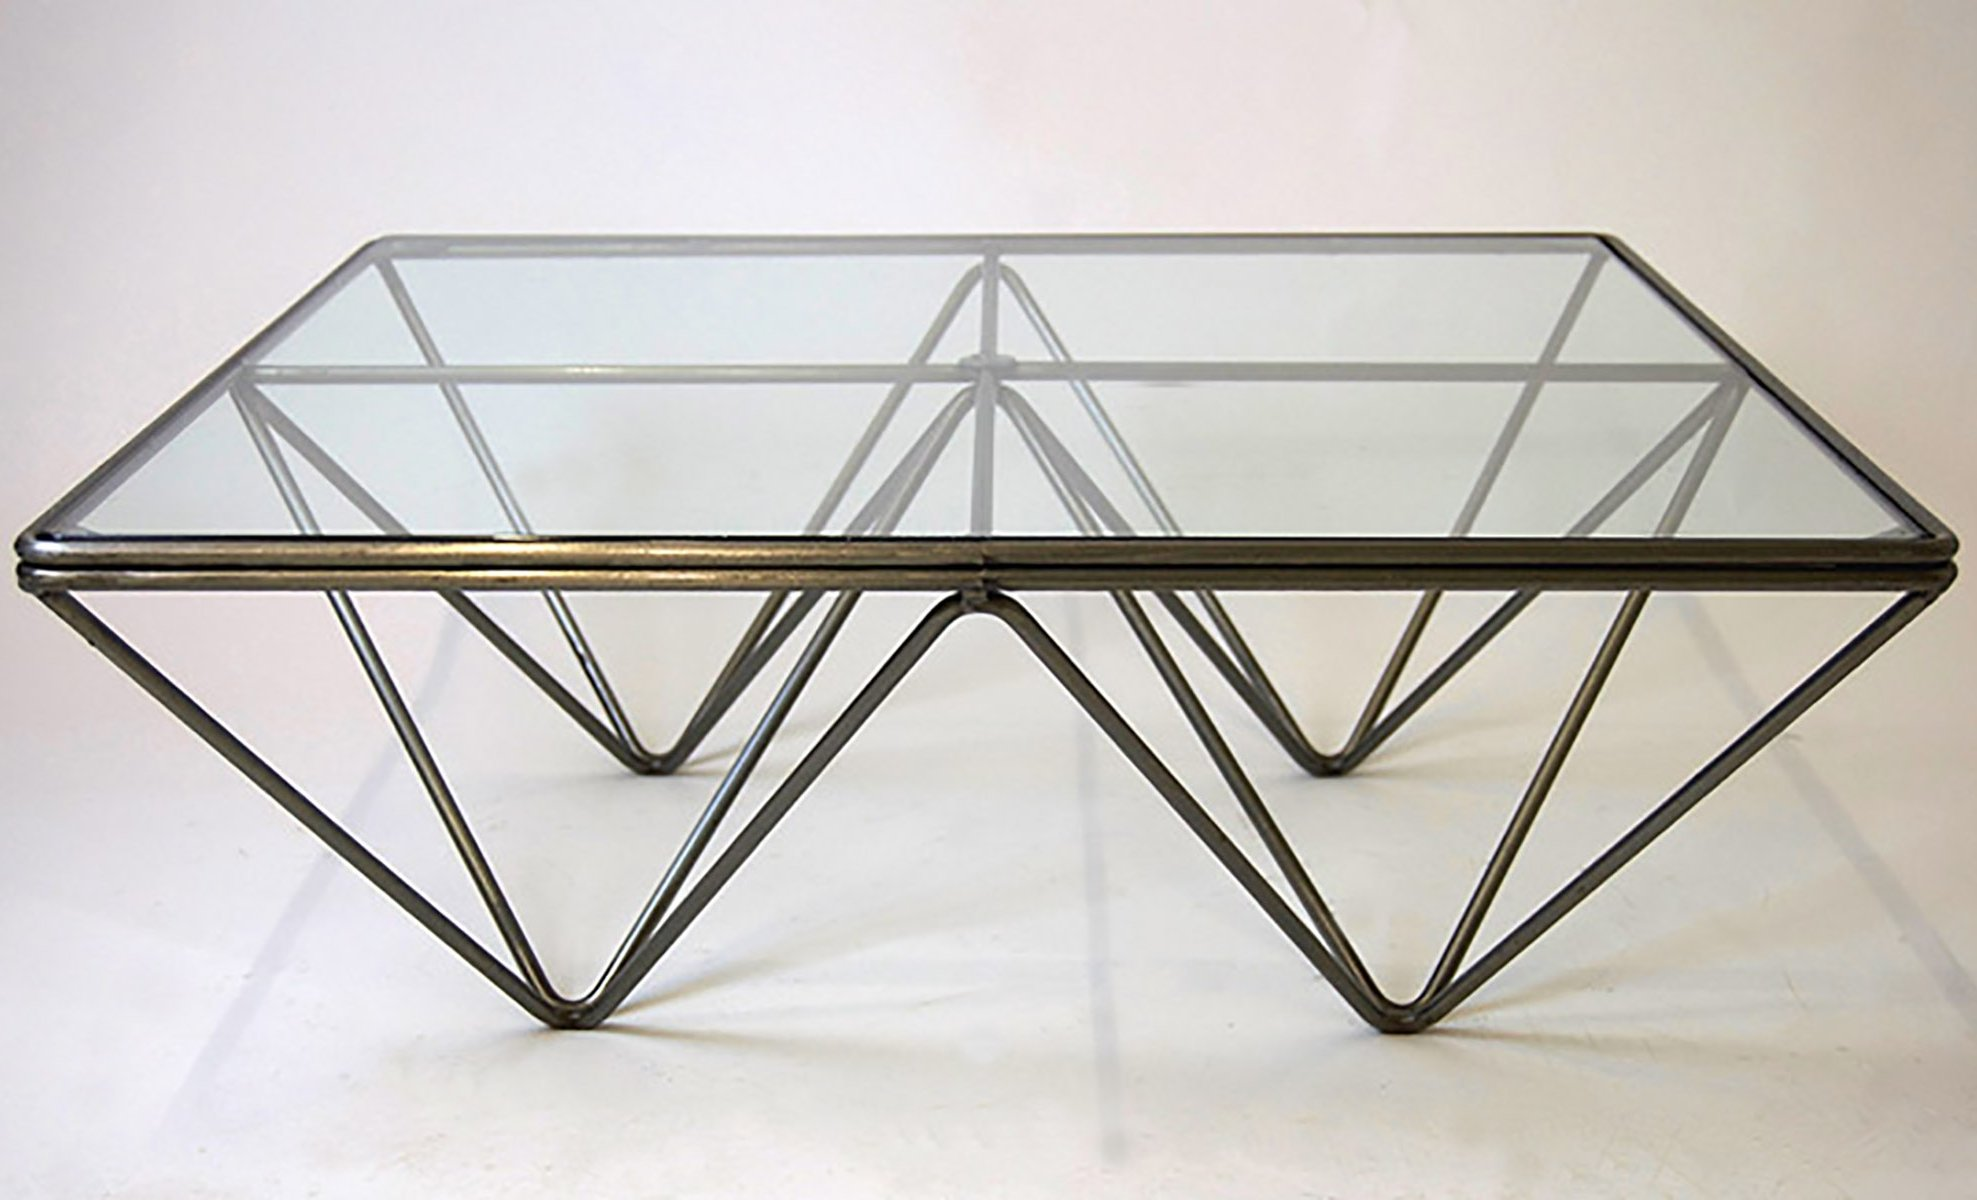 Original alanda coffee table by paolo piva for b b - B b italia link table ...